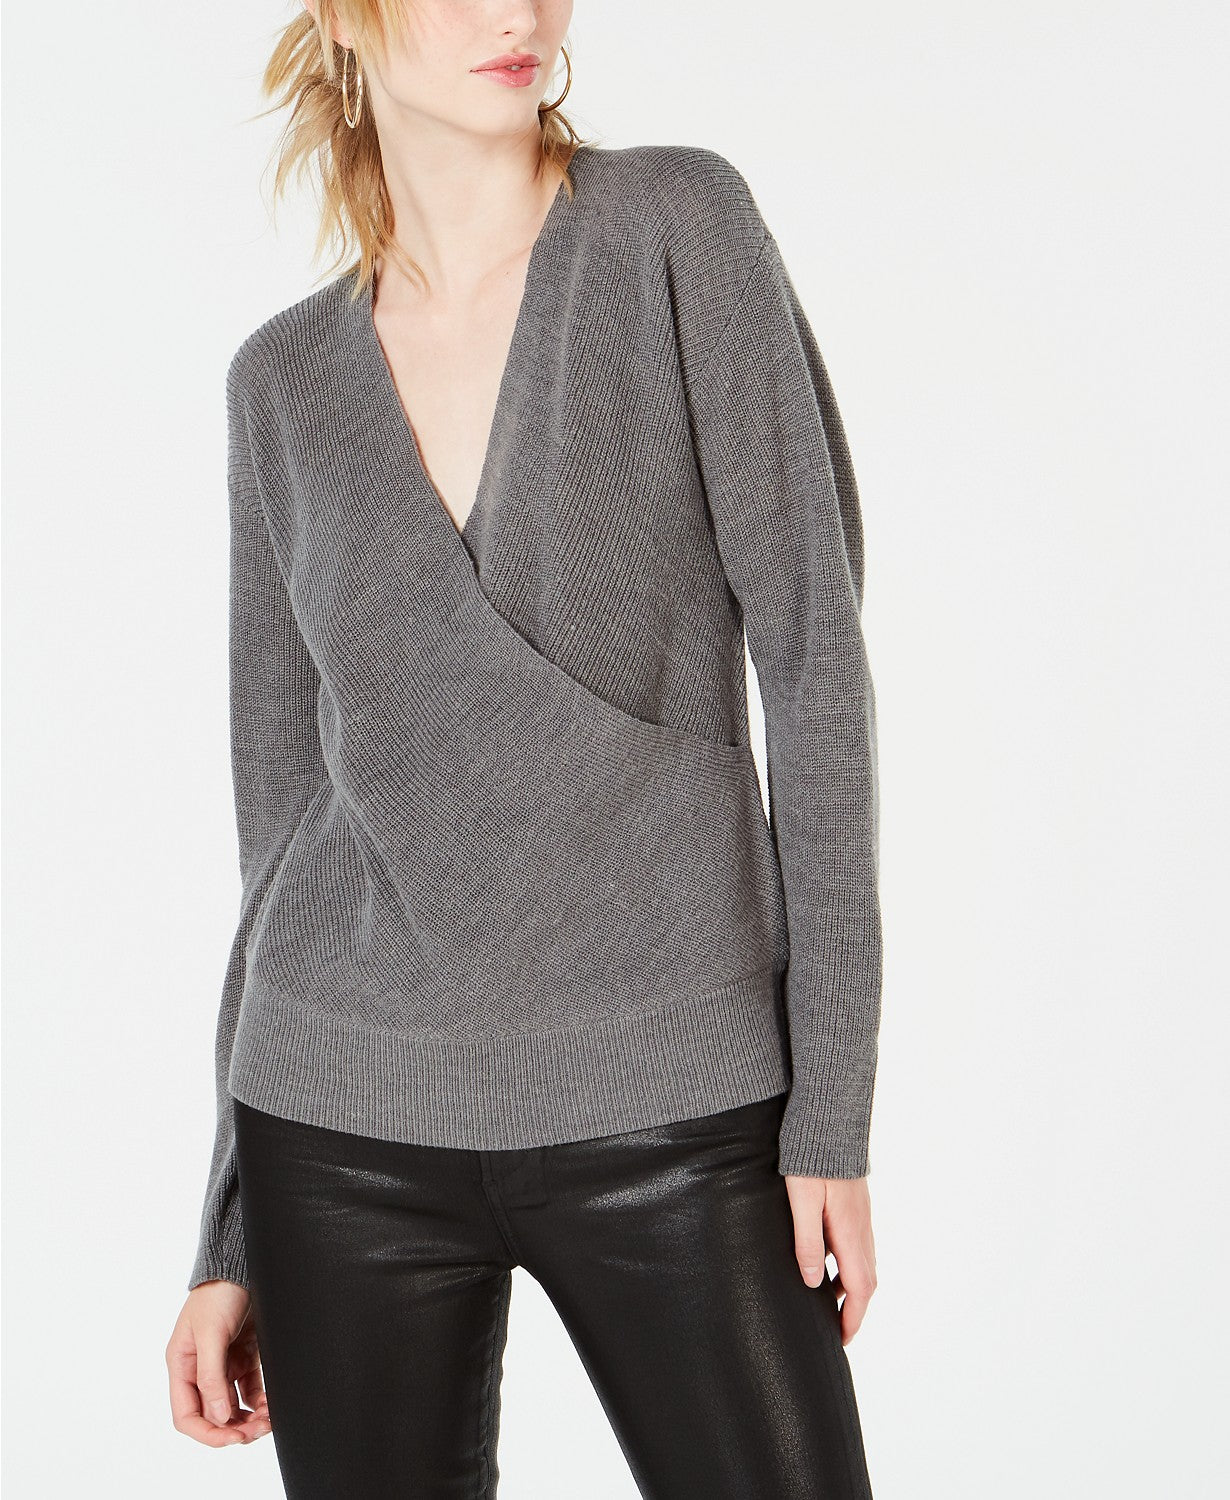 Bar III Surplice On or Off Shoulder Sweater - Gear Relapse